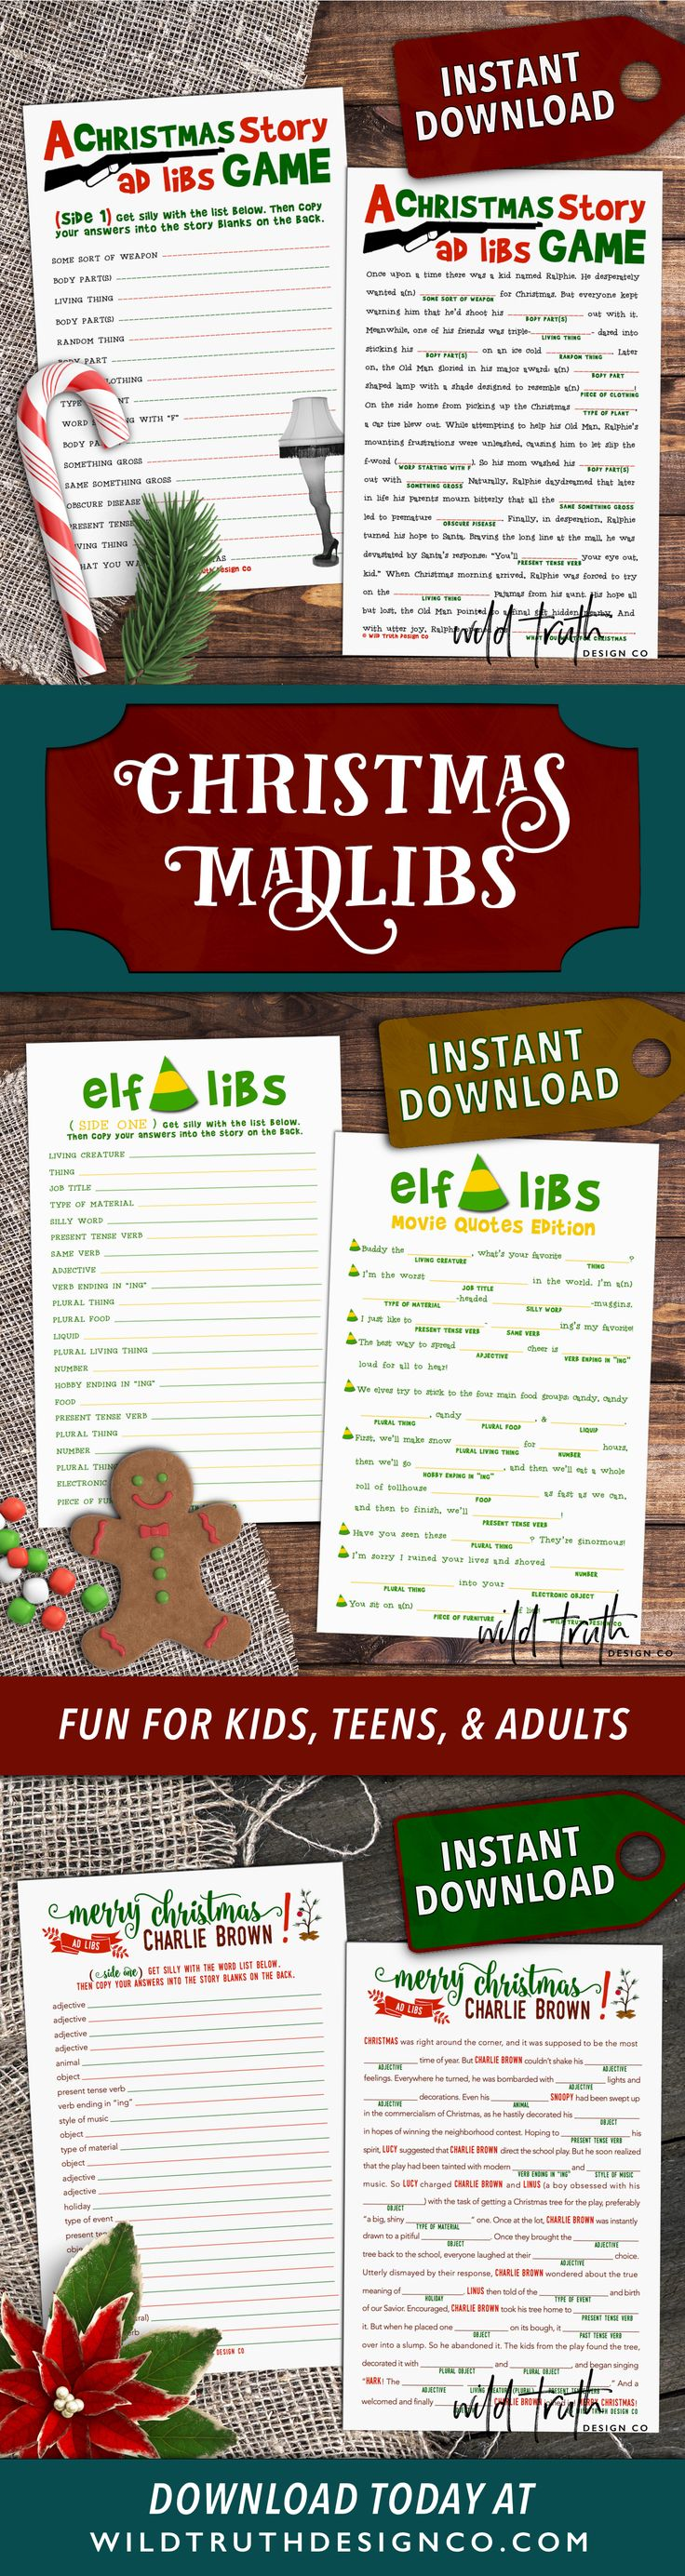 Crazy funny Christmas mad libs - printable downloads. Fun for kids, teens, & adults. Perfect for holiday office parties, classroom activities, & family fun snuggled up on the sofa!